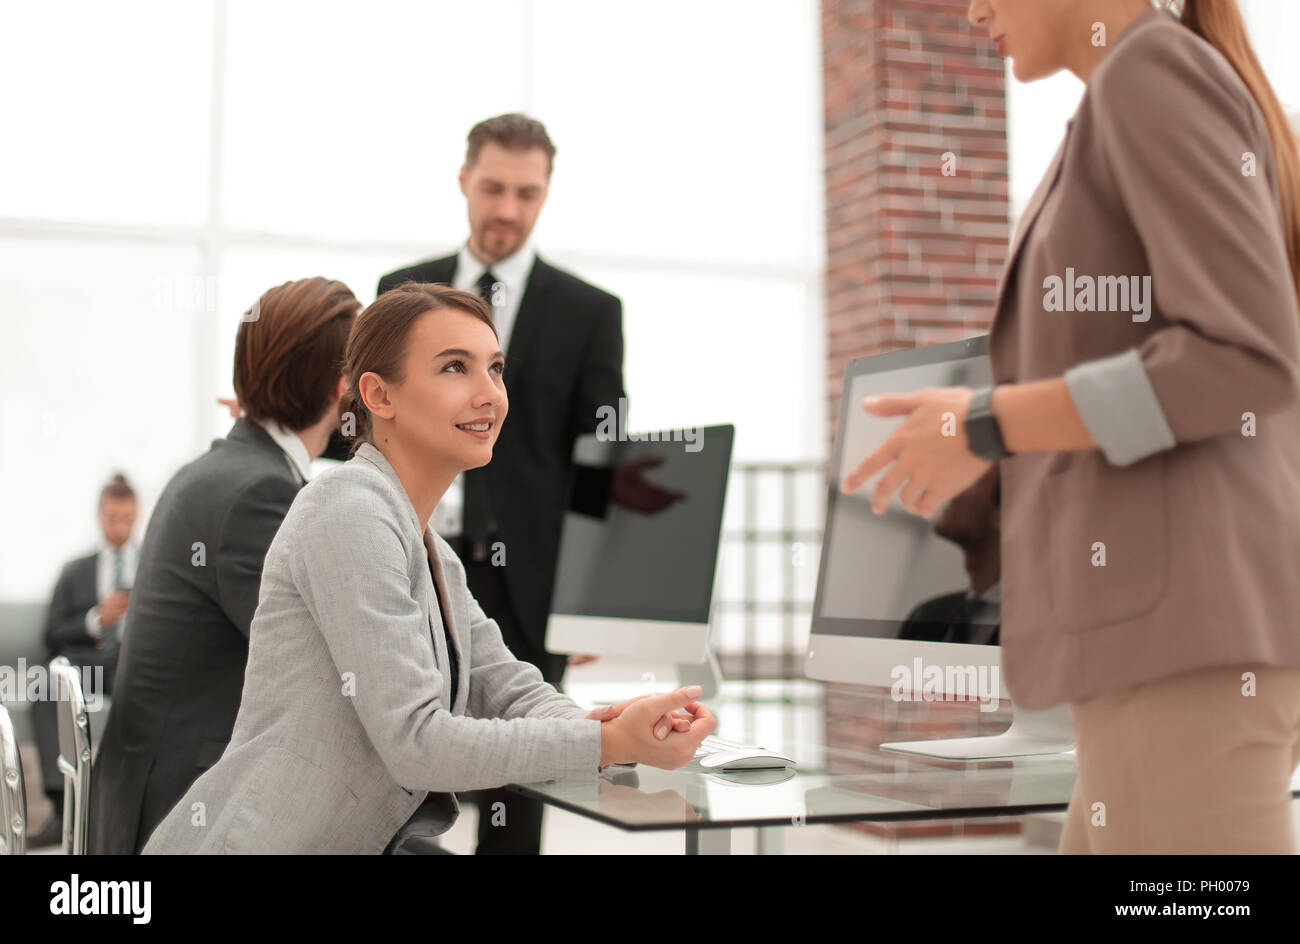 young Manager talking to the client. - Stock Image